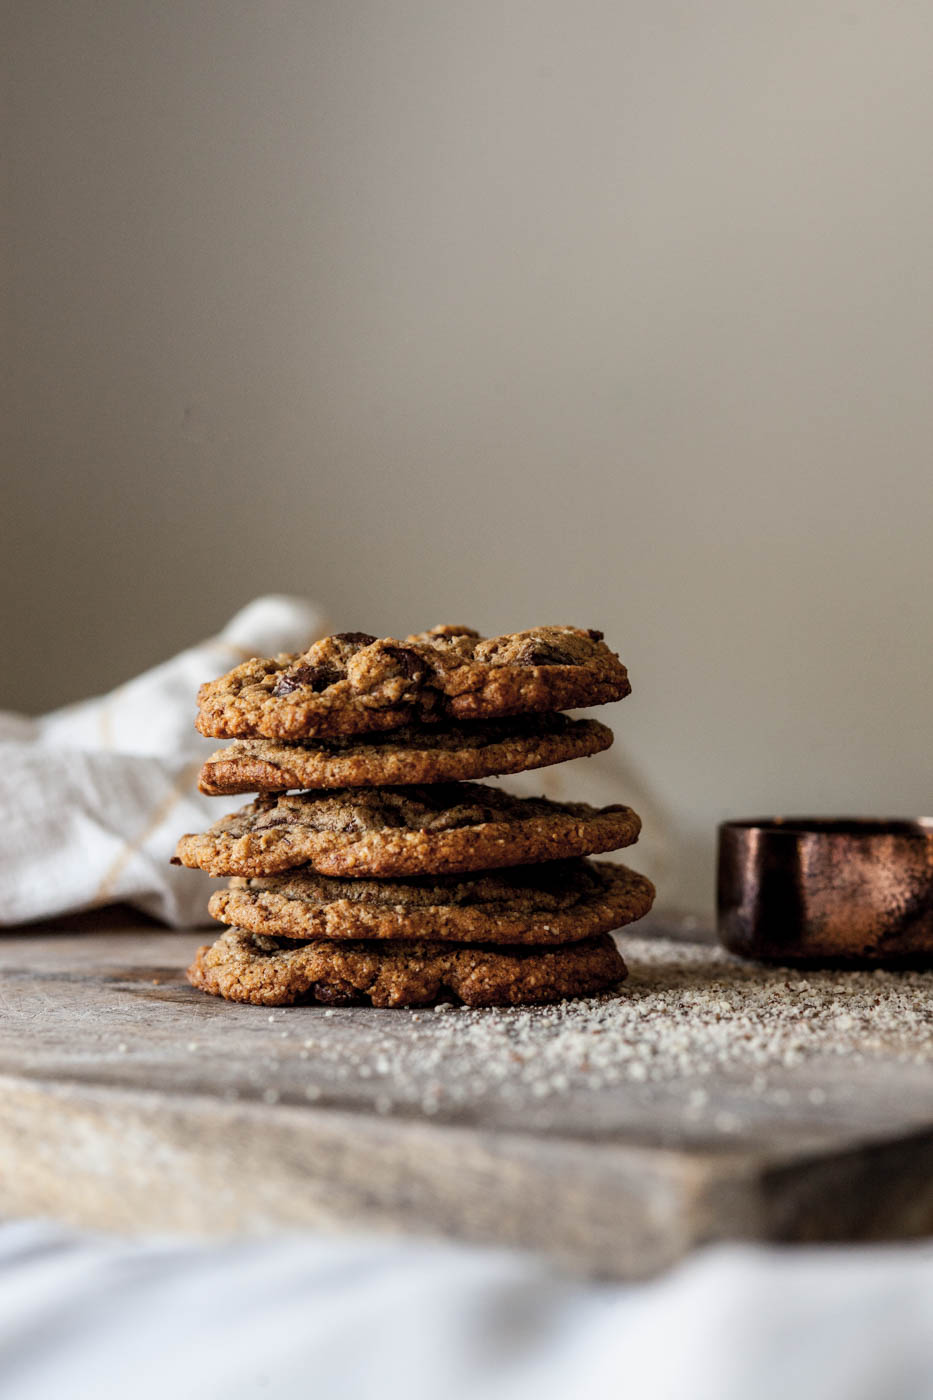 The Best Bakery Style Chocolate Chip Cookies (Gluten Free + Paleo Friendly)